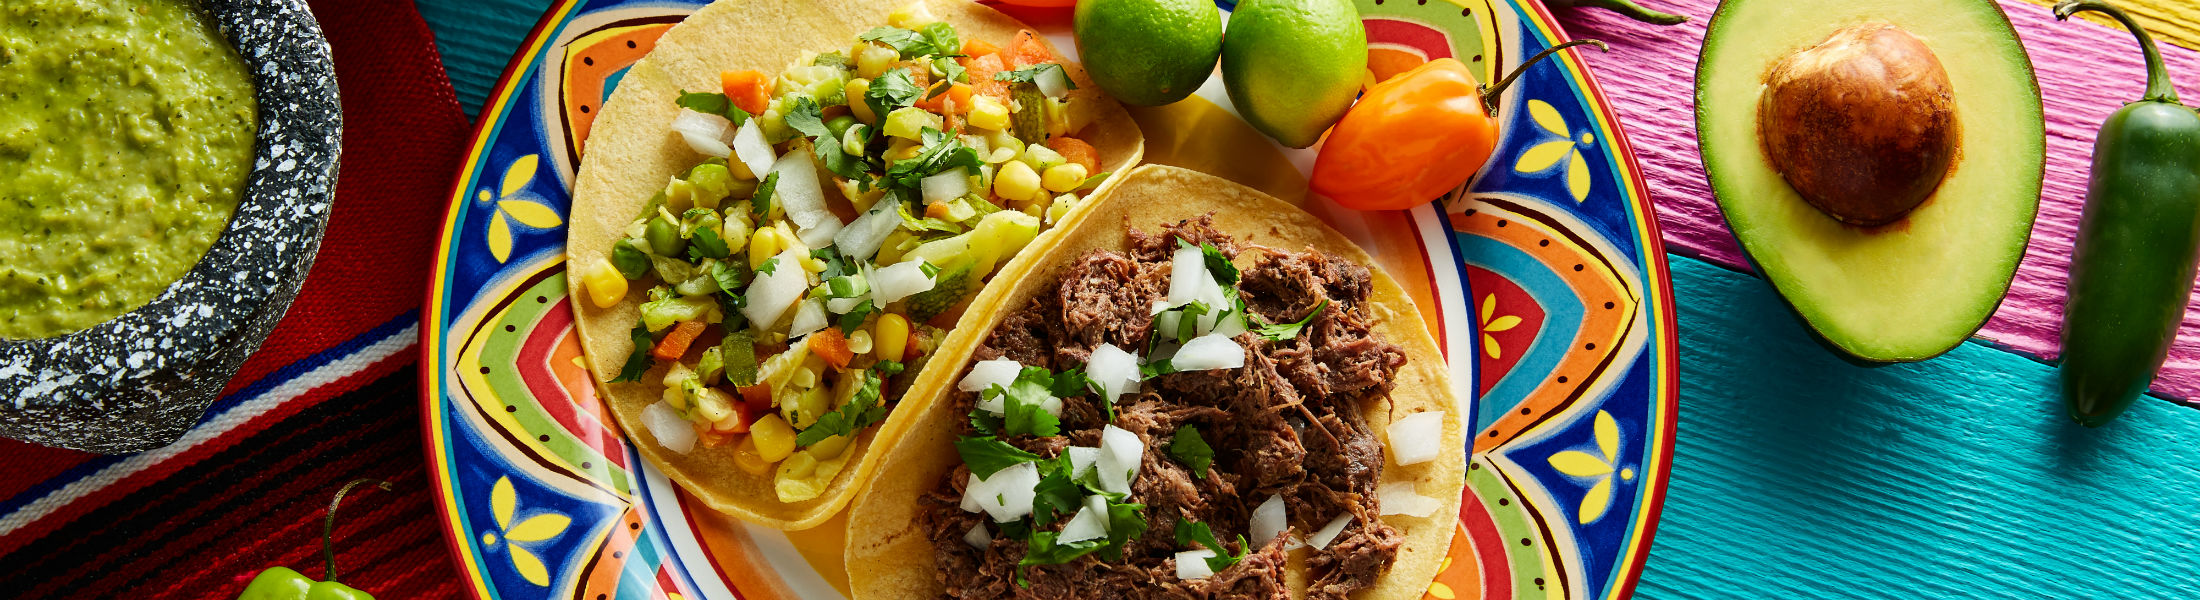 Mexican platillo tacos of barbacoa